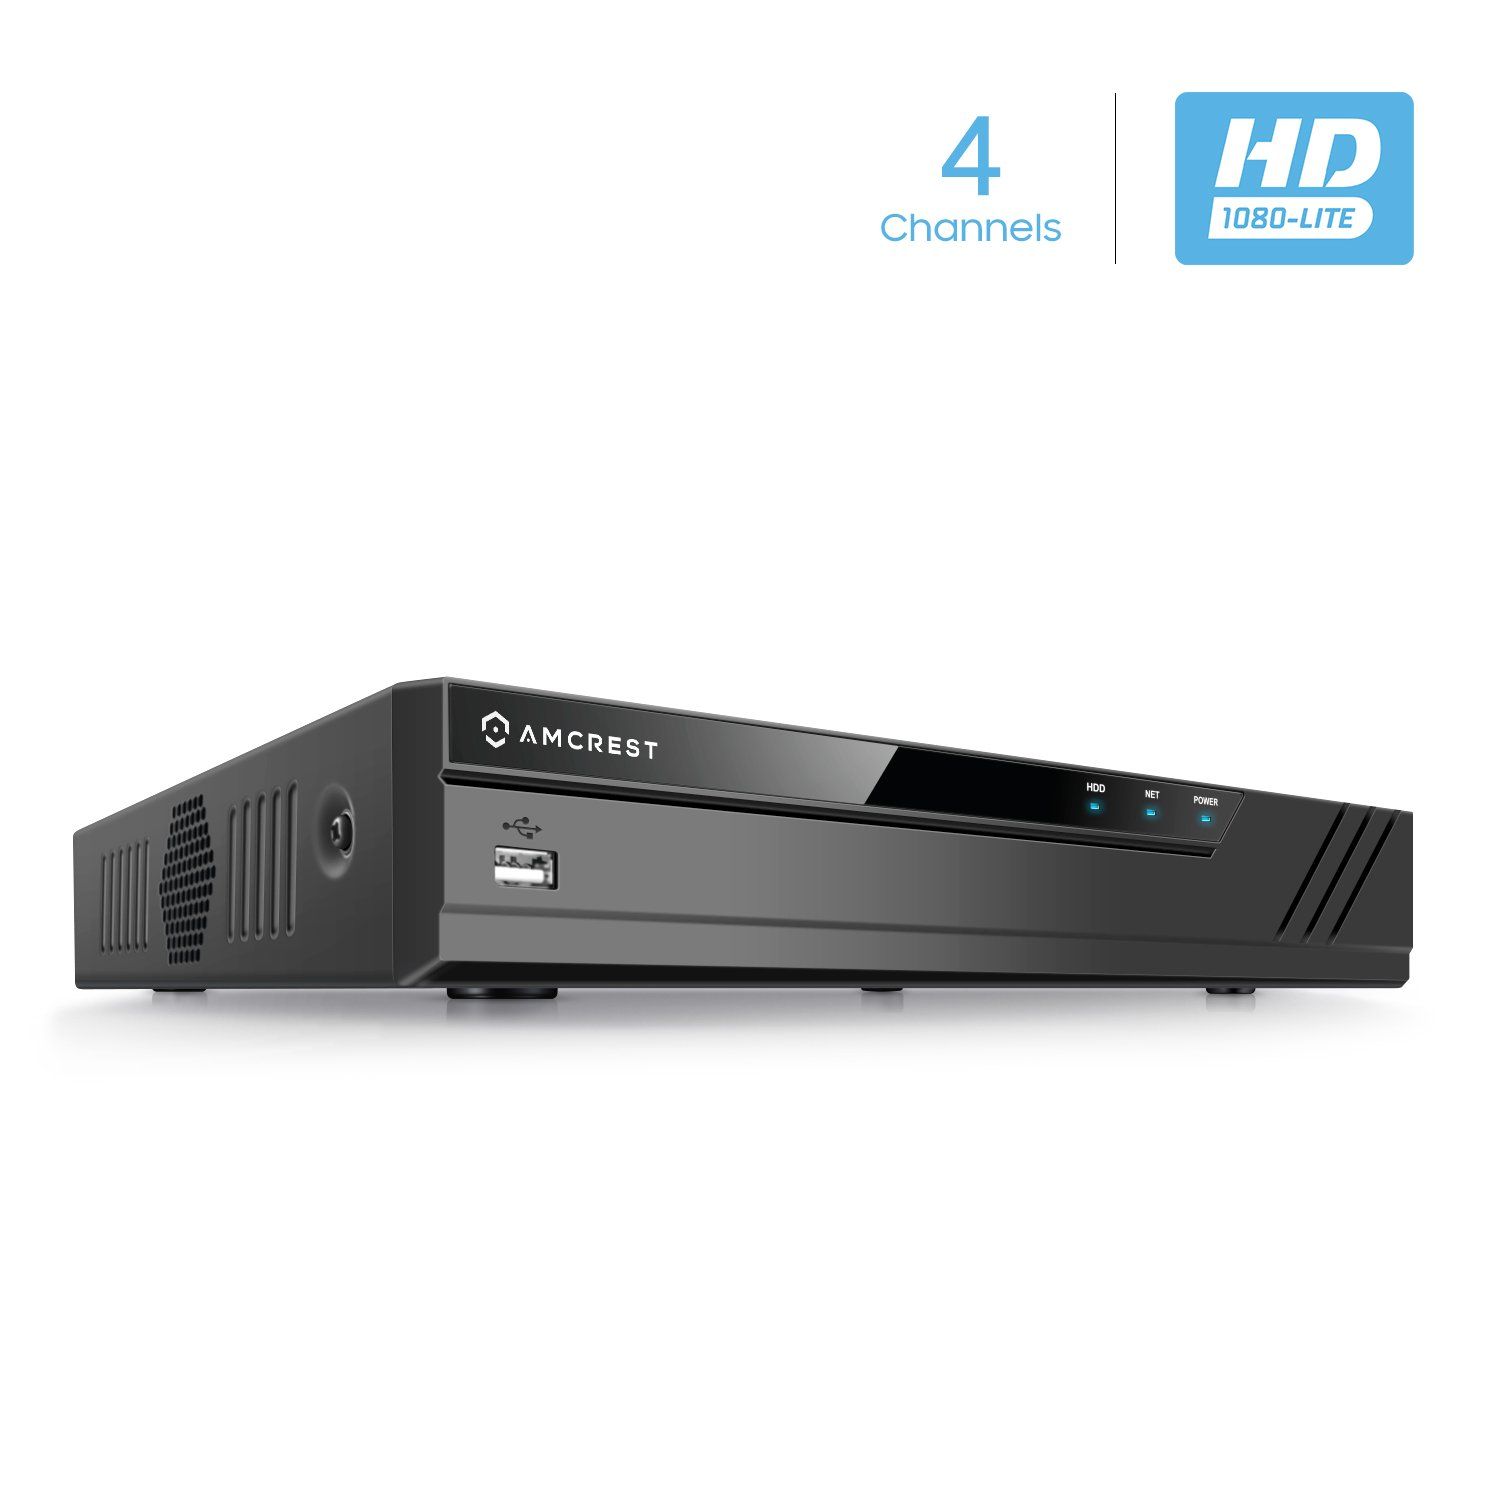 Amcrest 1080P-Lite 4CH HD Video Security DVR Digital Recorder, ProHD 4-Channel Pentabrid (5-1) Supports 960H/HDCVI/HDTVI/AHD/IP, HDD & Cameras NOT Included, Security Camera System (AMDVTENL4)